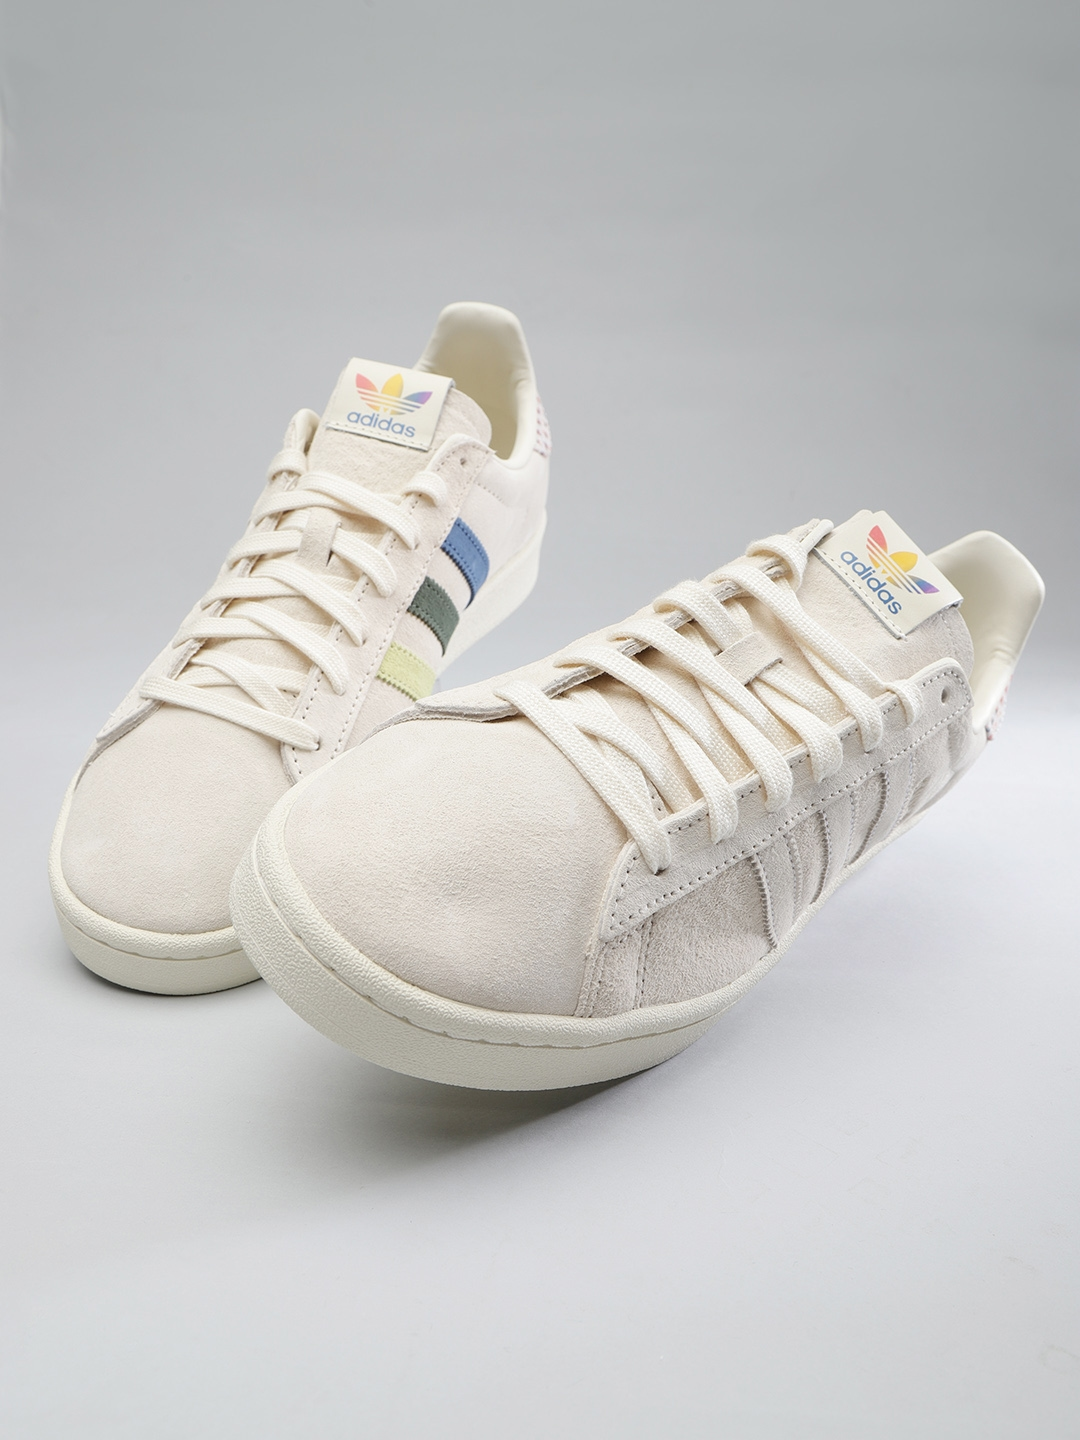 check out 2dc45 ed6c6 ADIDAS Originals Men Cream-Coloured Campus Pride Sneakers